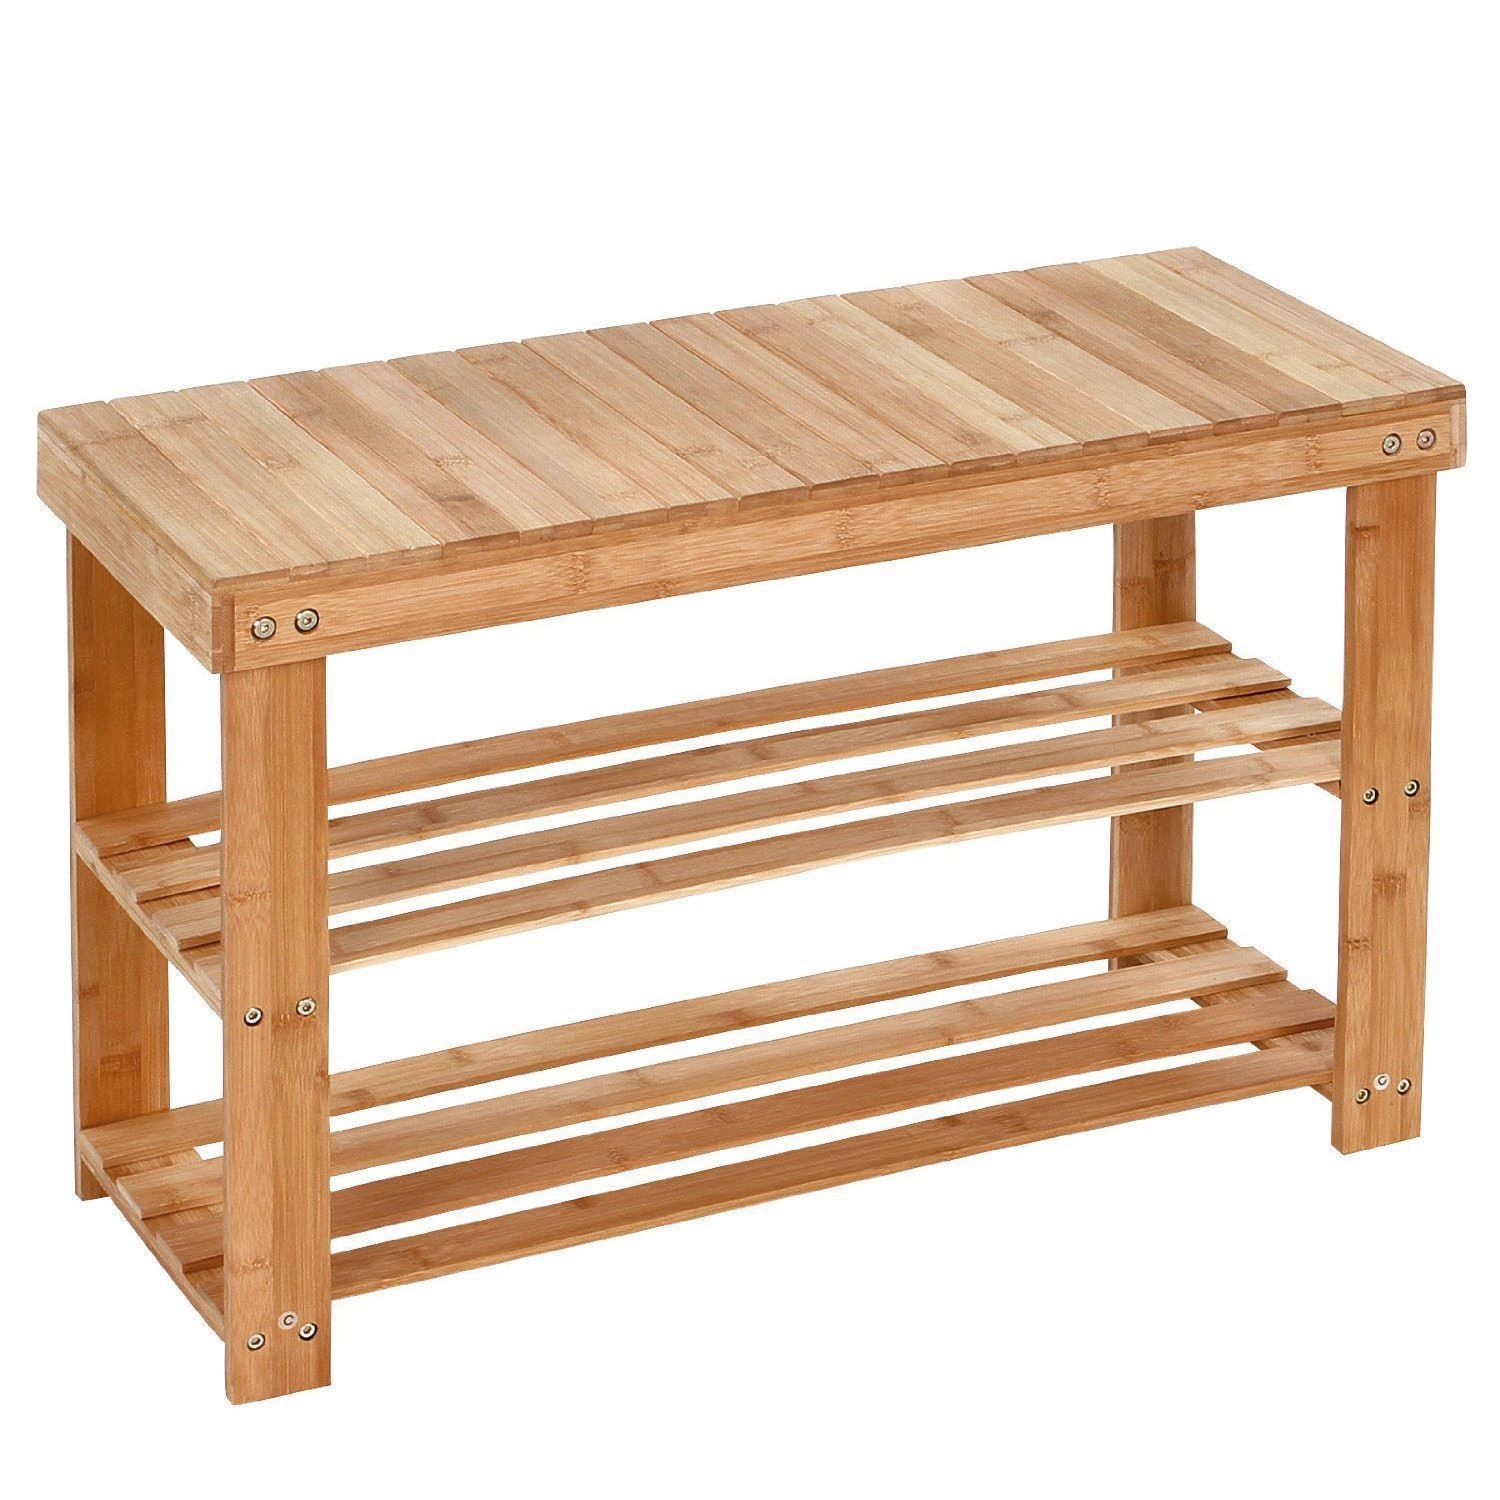 3 Tier Bamboo Bench Shoe Rack. Keep Your Shoes Organised With Our Stylish  Solid Bamboo